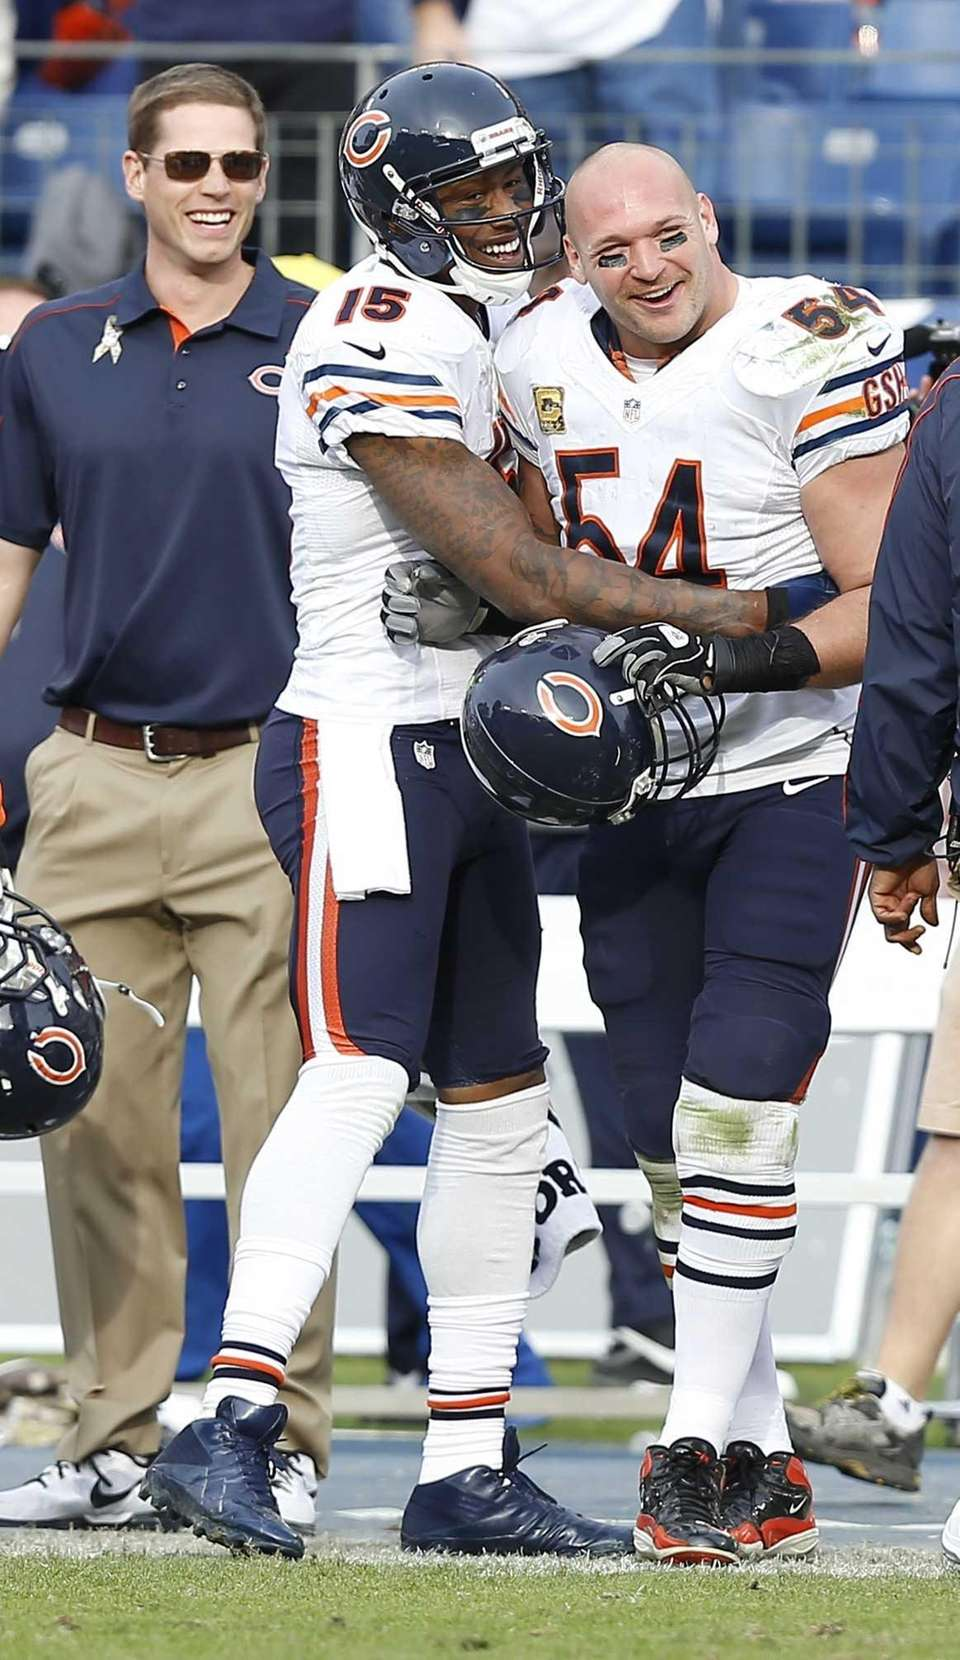 Chicago Bears wide receiver Brandon Marshall (15) and